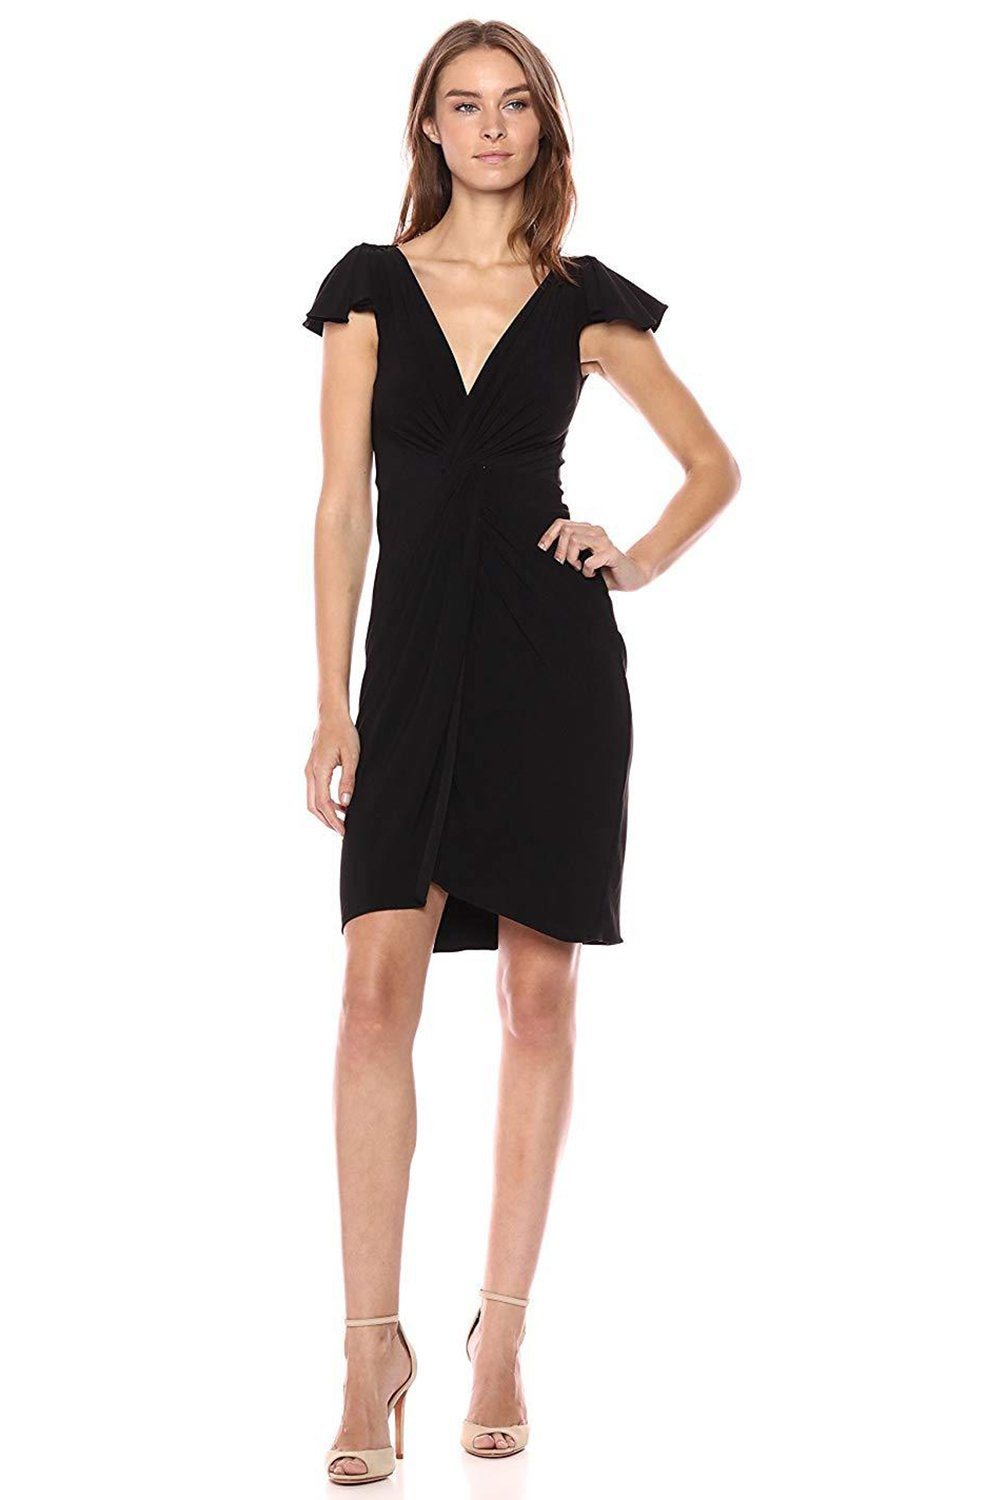 Taylor - 9780MJ Twist Knot Flutter Sleeve Jersey Dress In Black